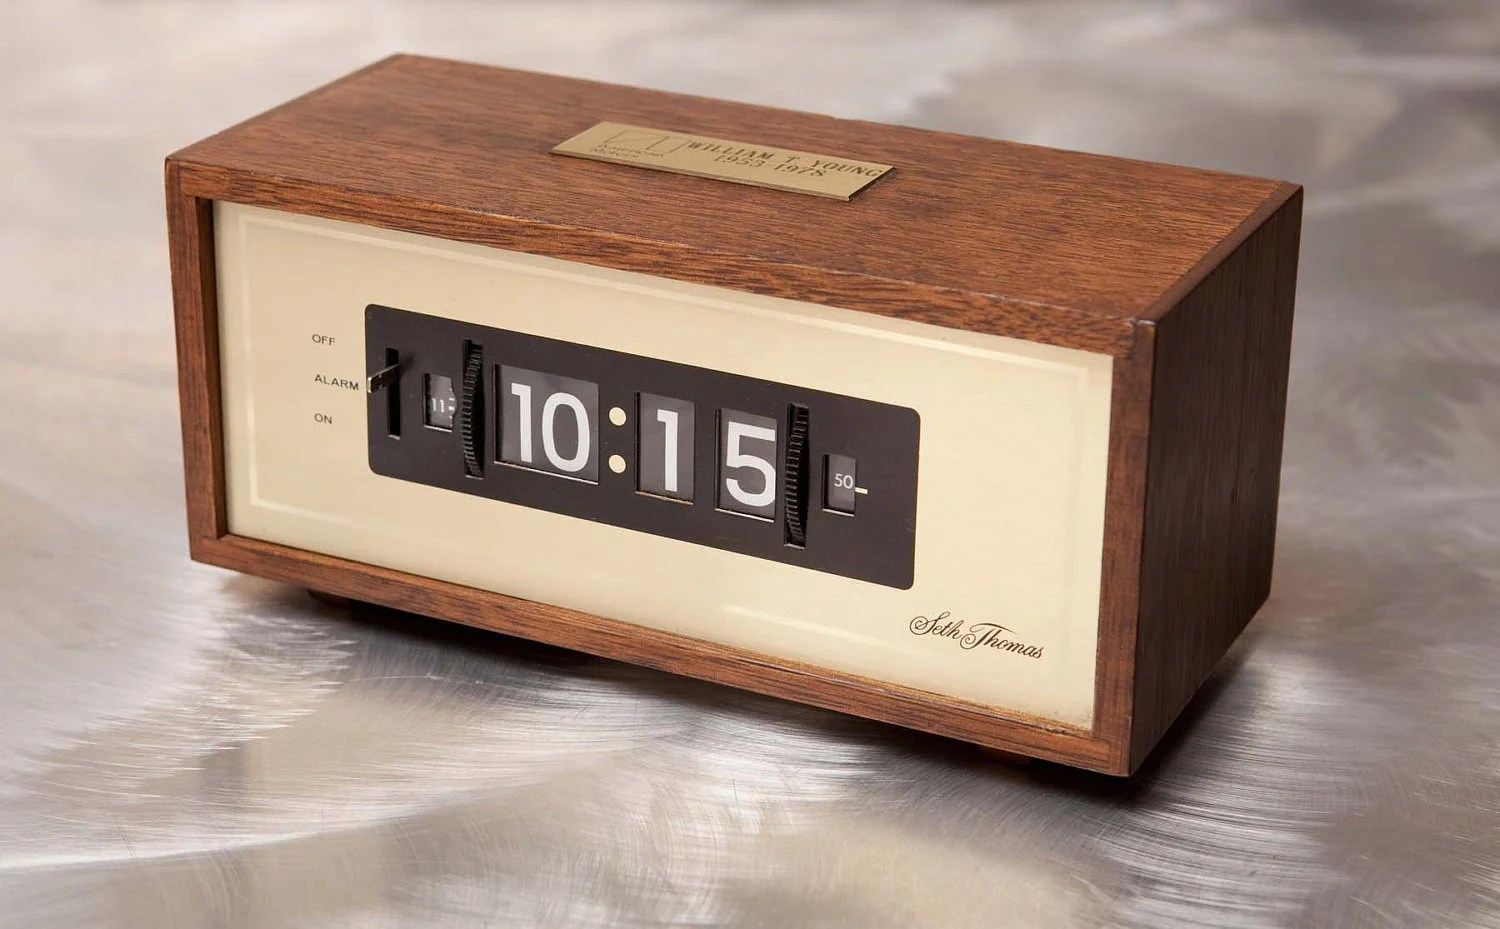 Modern Digital Clocks Mid Century Modern Digital Clock Seth Thomas 1978 American